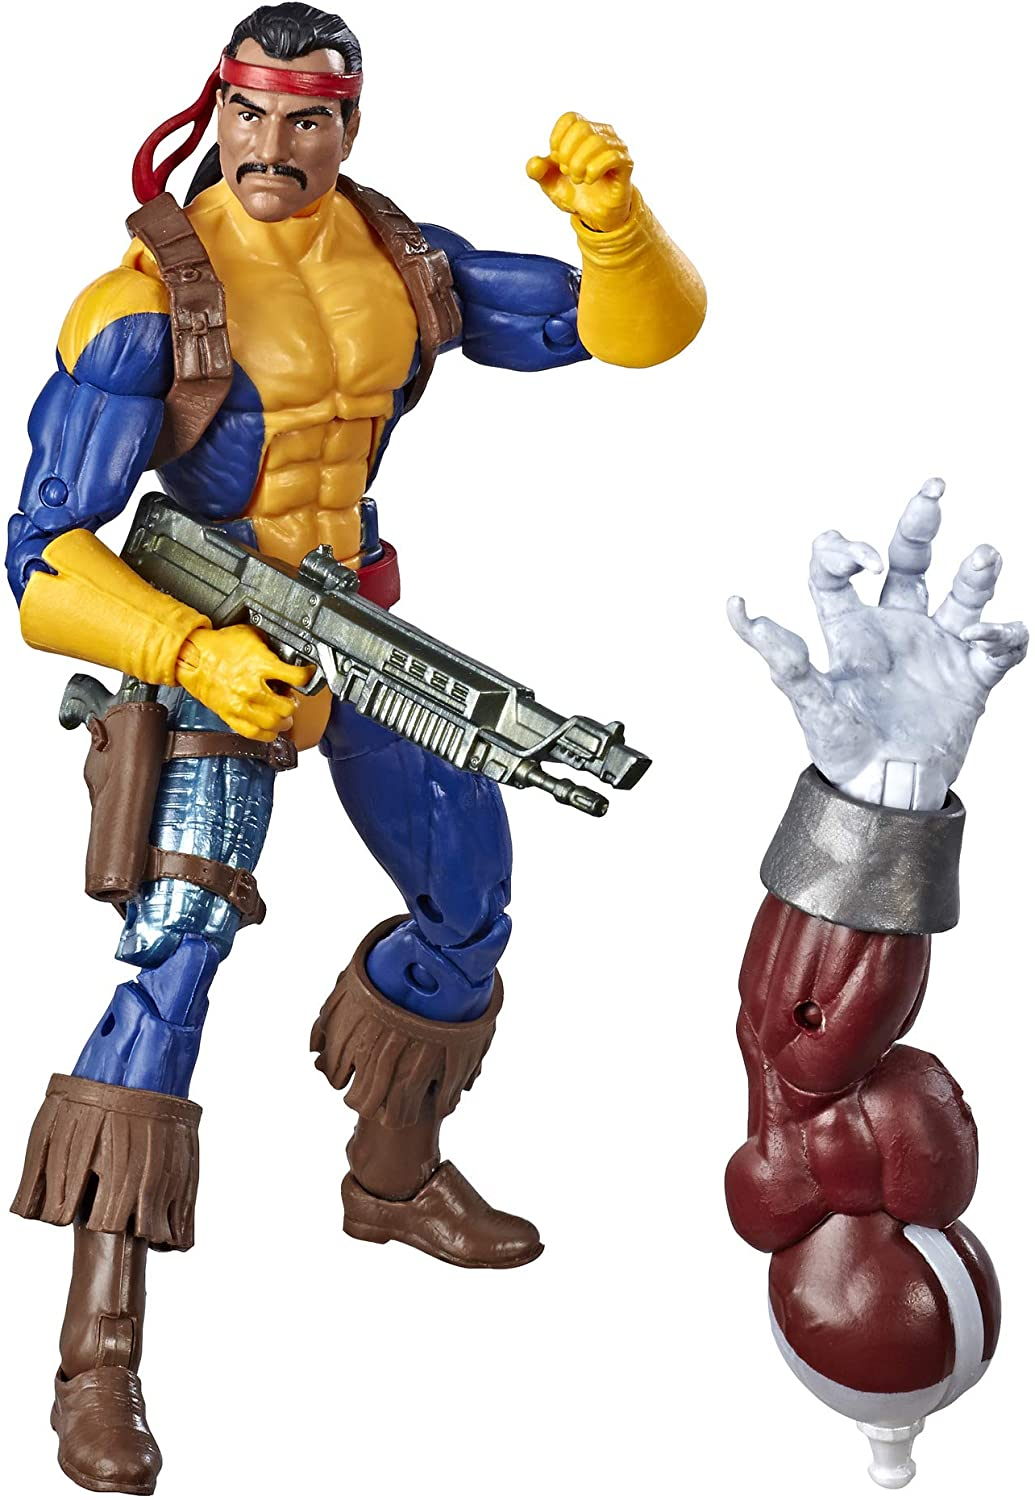 Marvel Legends - X-Men - Caliban BAF - Marvel's Forge (Jim Lee Version) 6-inch Action Figure (E5327)